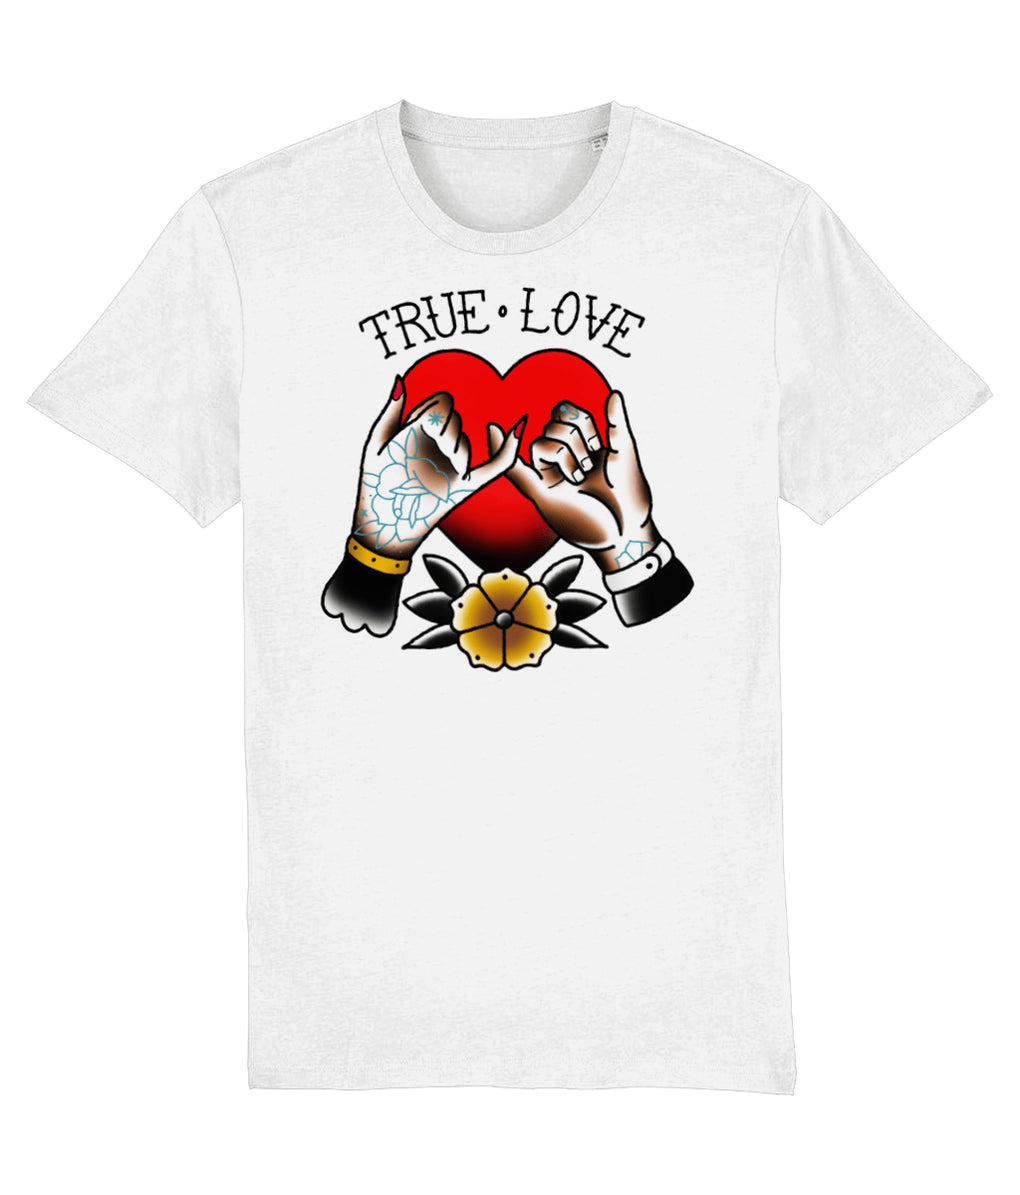 tattoo inspired T-shirt X-Small True Love - White Tee